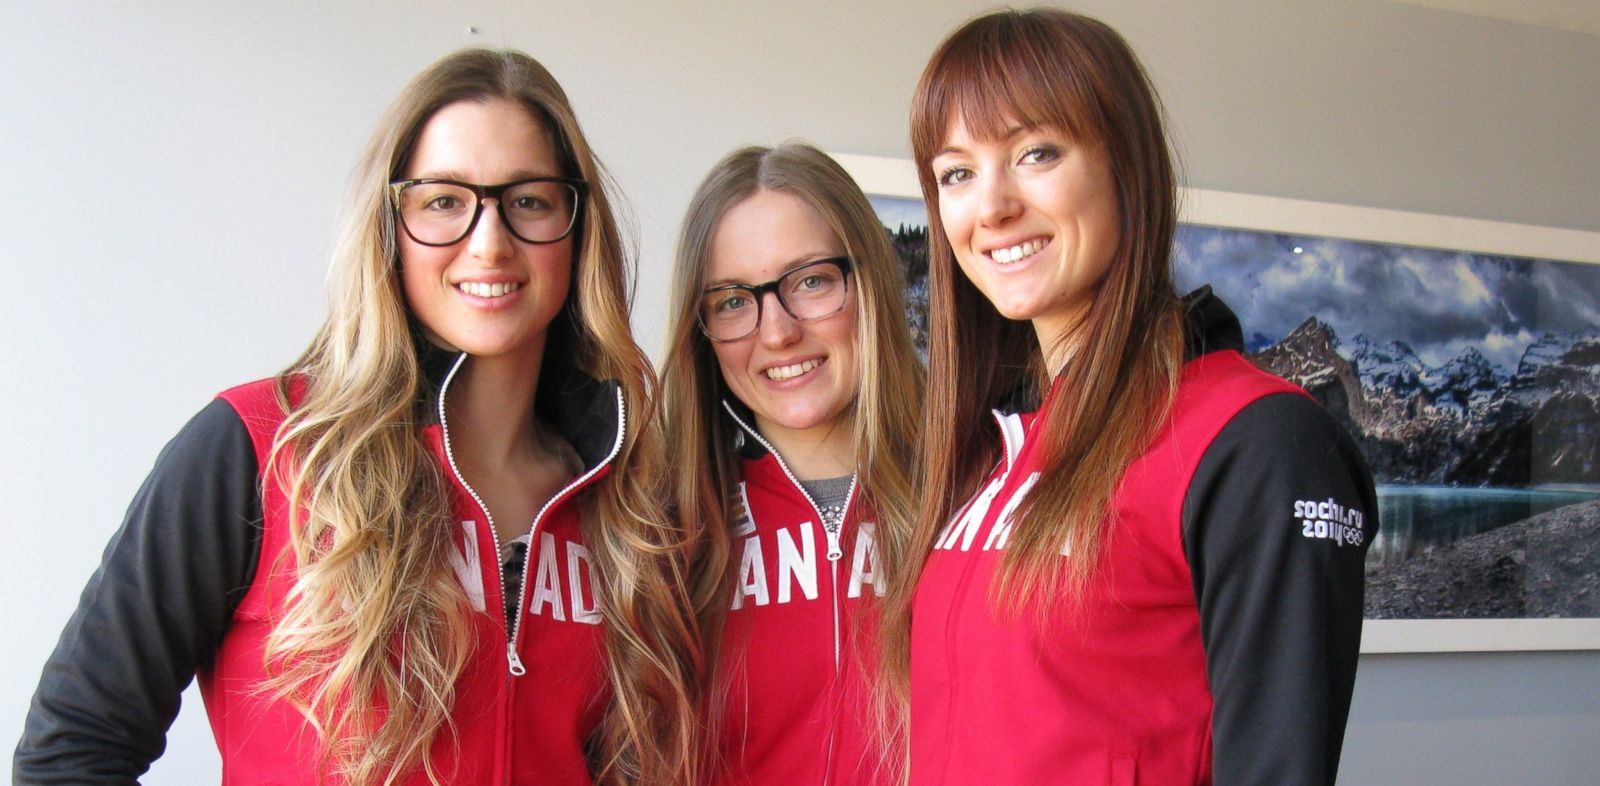 PHOTO: The three Canadian sisters, Chloe (L), Justine (C) and Maxime (R), are pictured on Jan. 21, 2014 at the Victoria Park gym center in Montreal, Canada.